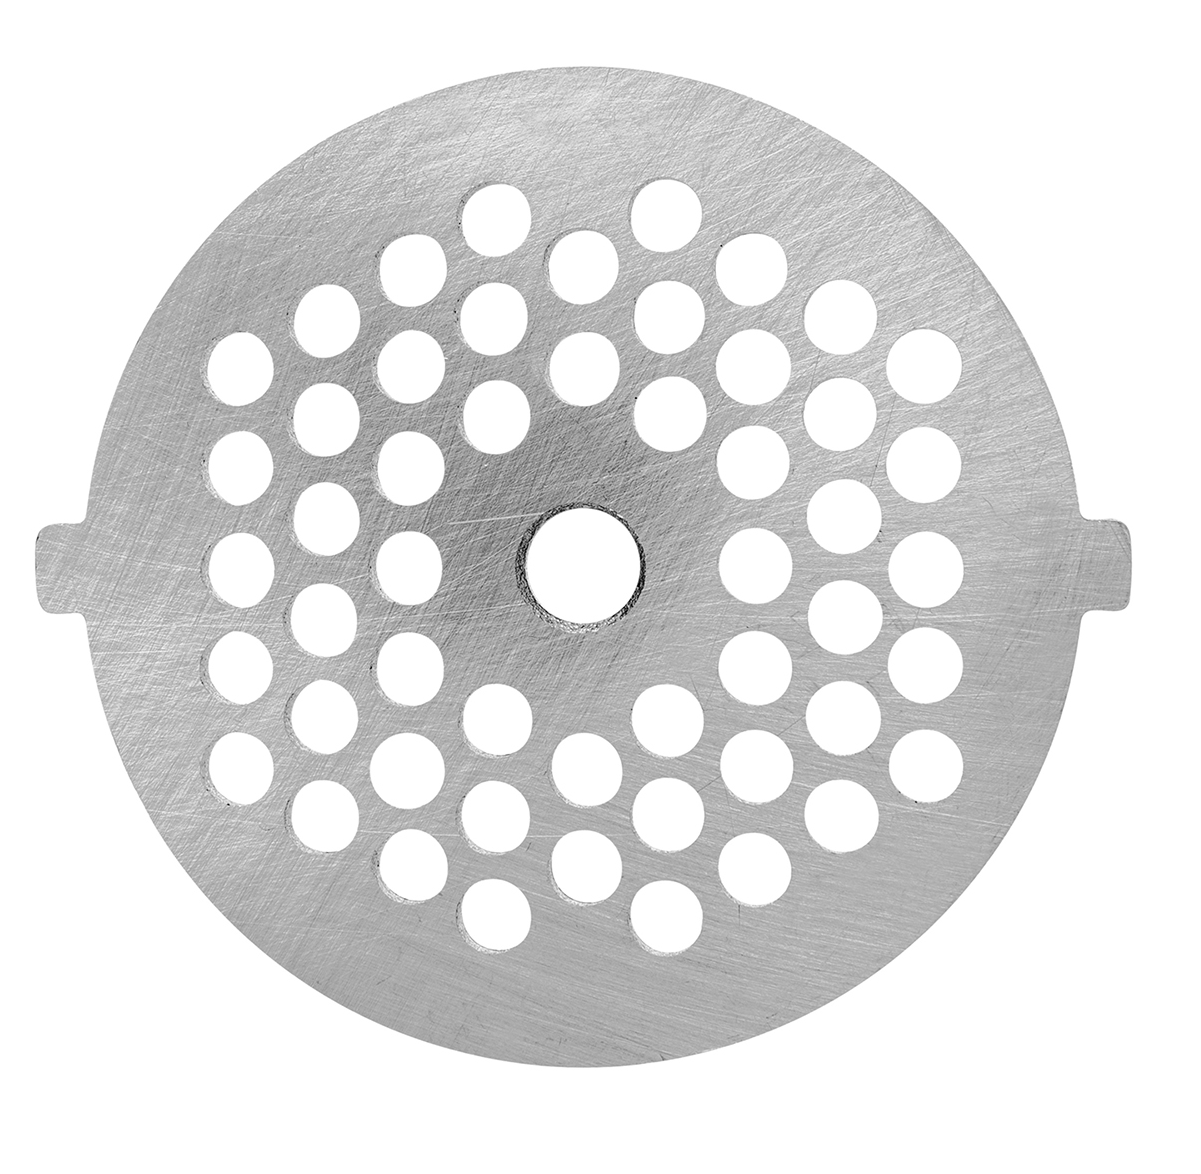 luvele-eu - 5mm Stainless Steel Cutting Plate for the Luvele Meat grinder